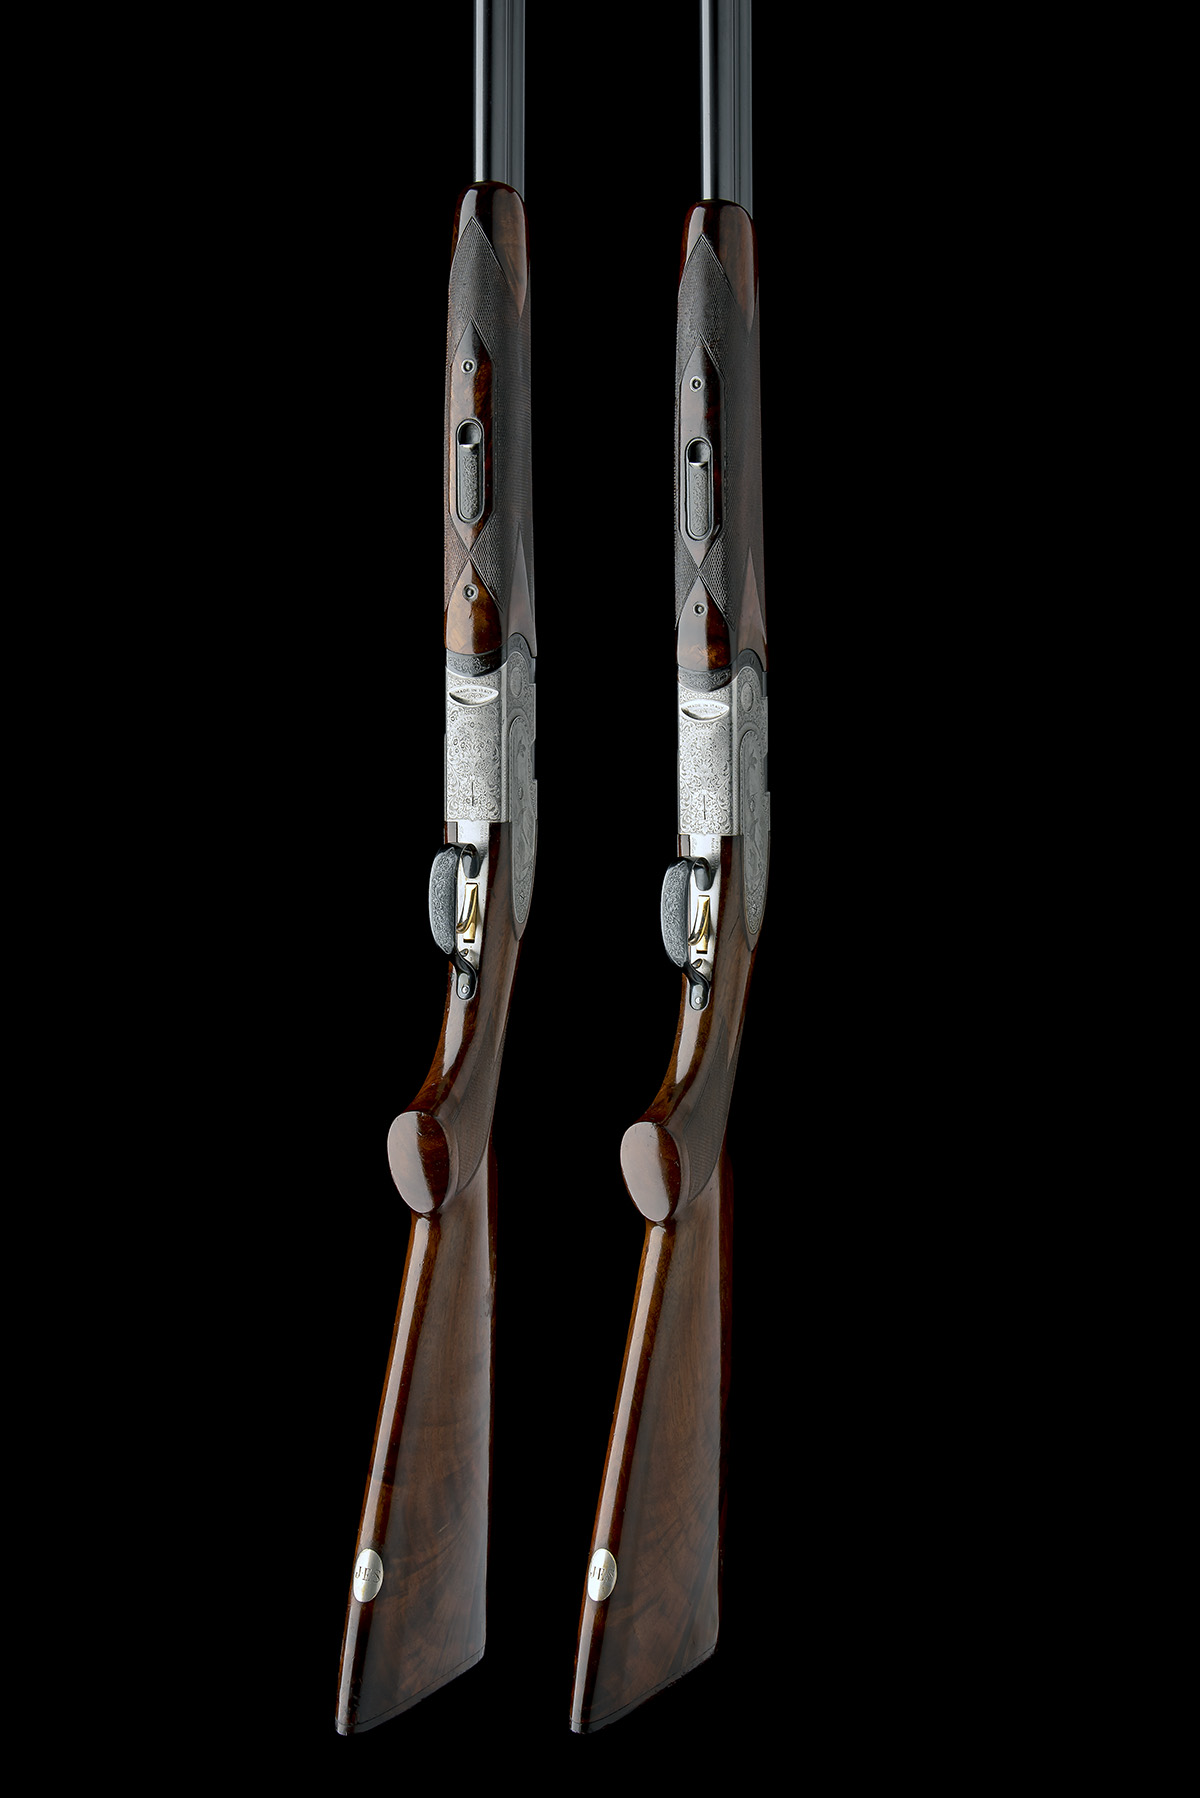 P. BERETTA A PAIR OF 20-BORE 'MOD. 687 EELL' SINGLE-TRIGGER OVER AND UNDER EJECTORS, serial no. - Image 7 of 10